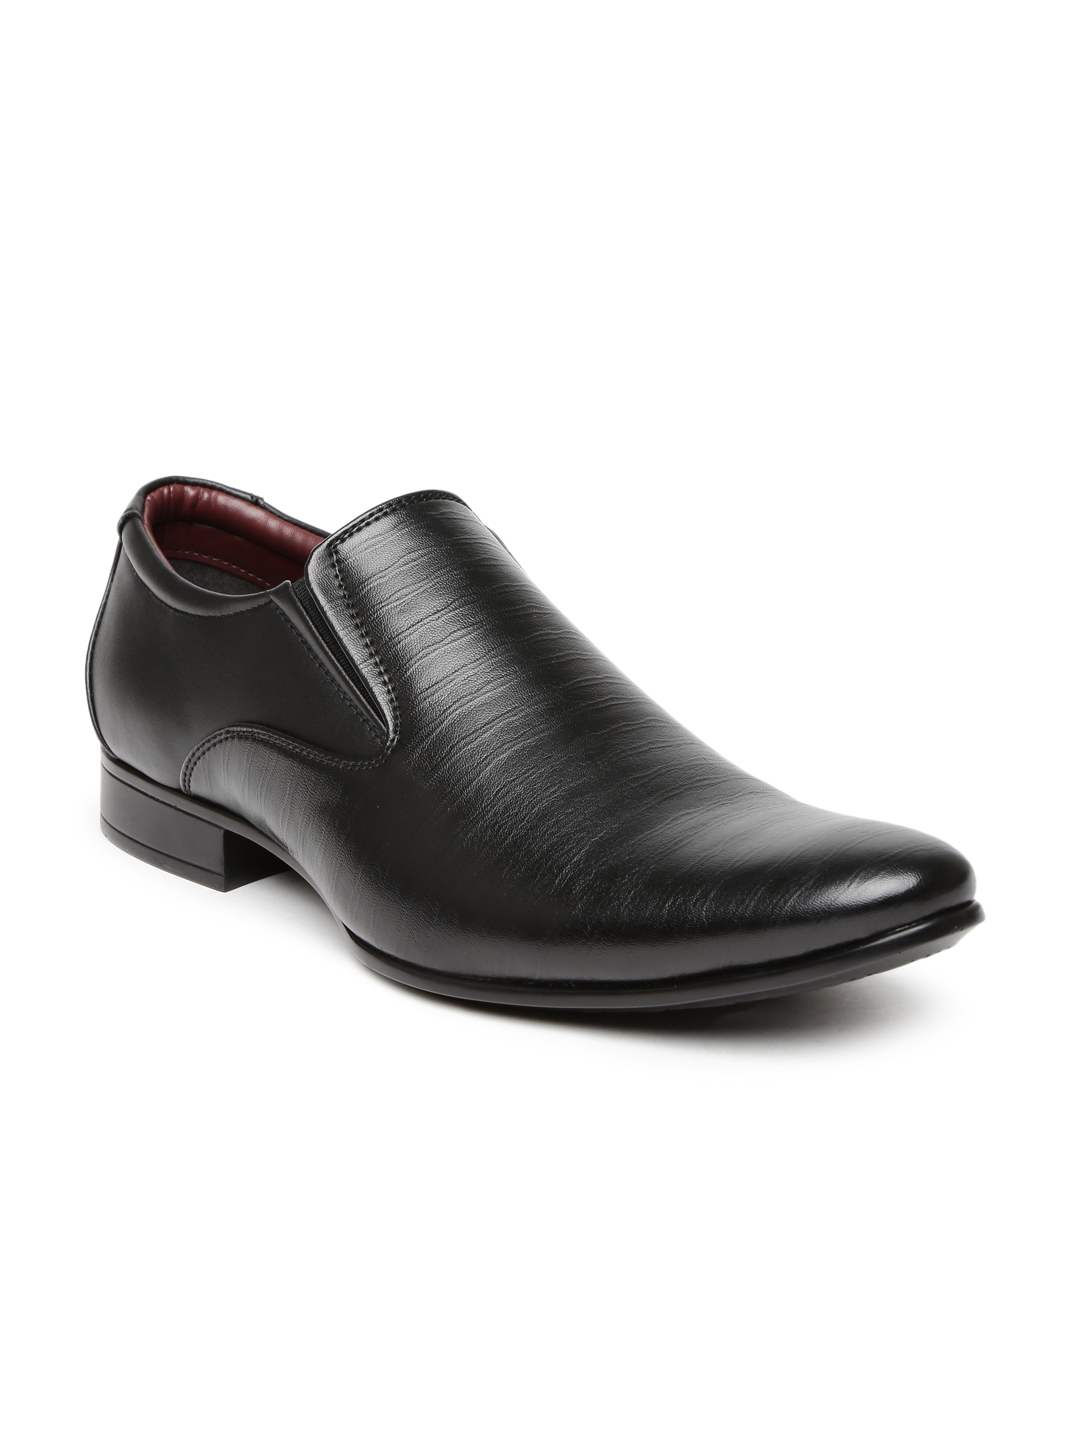 buy bata black viktor formal shoes formal shoes for